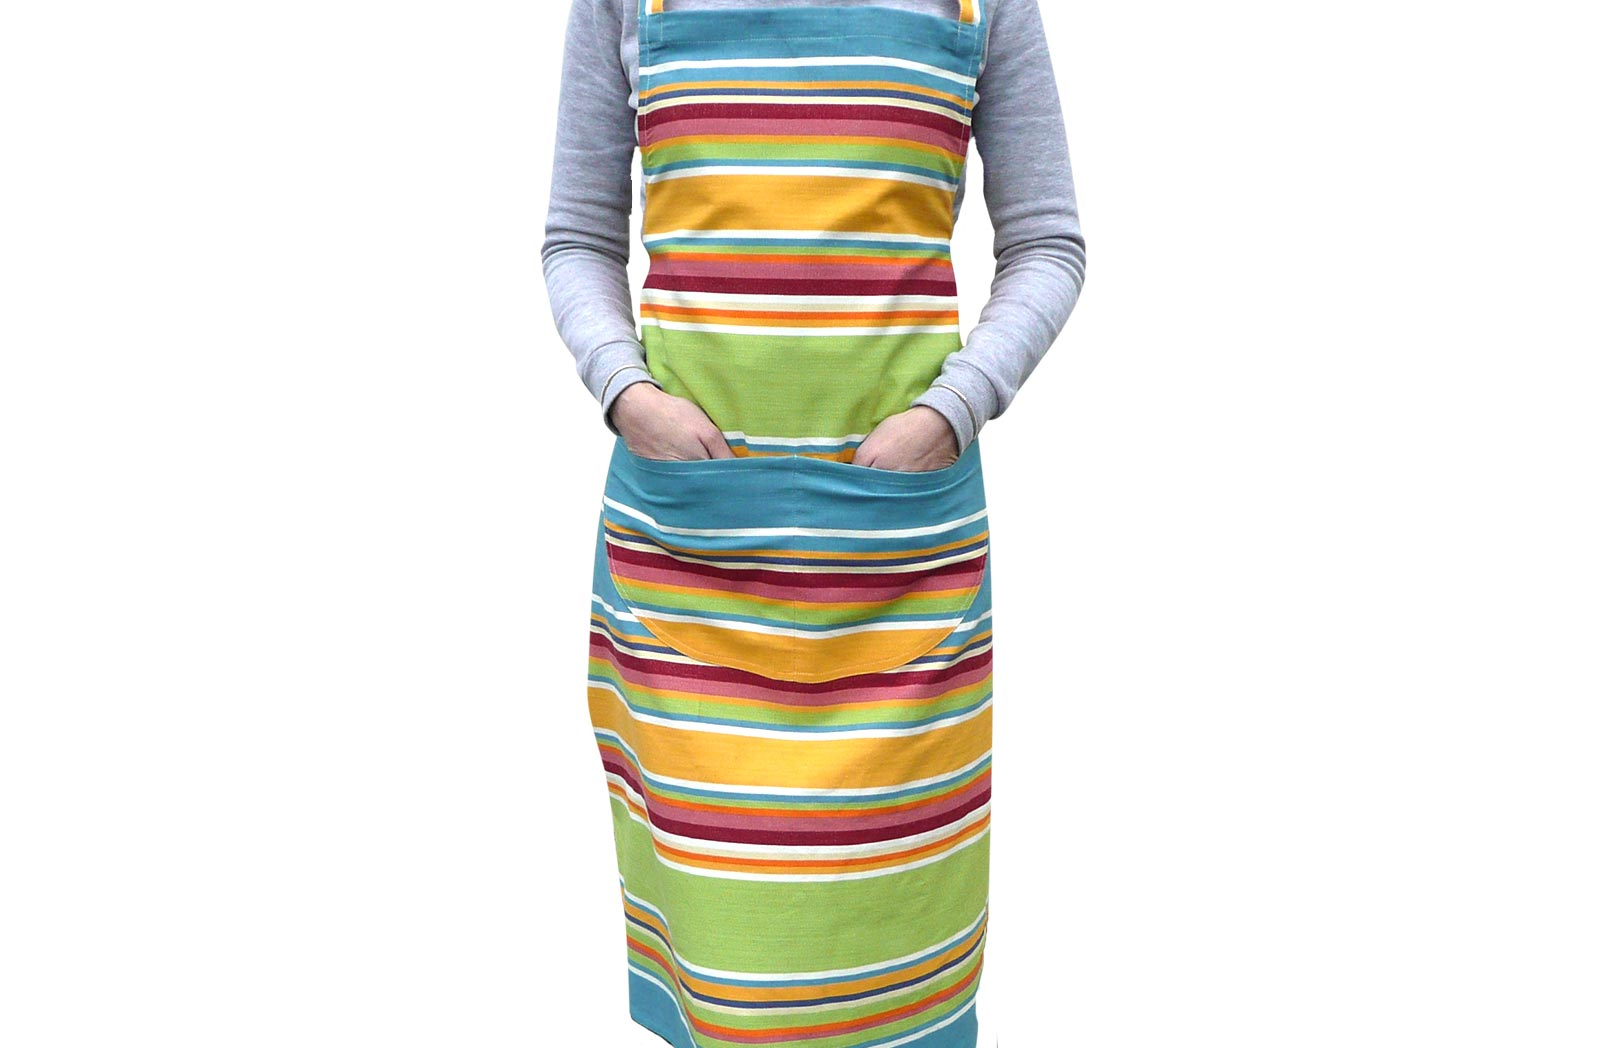 Striped Apron yellow, green, blue stripes